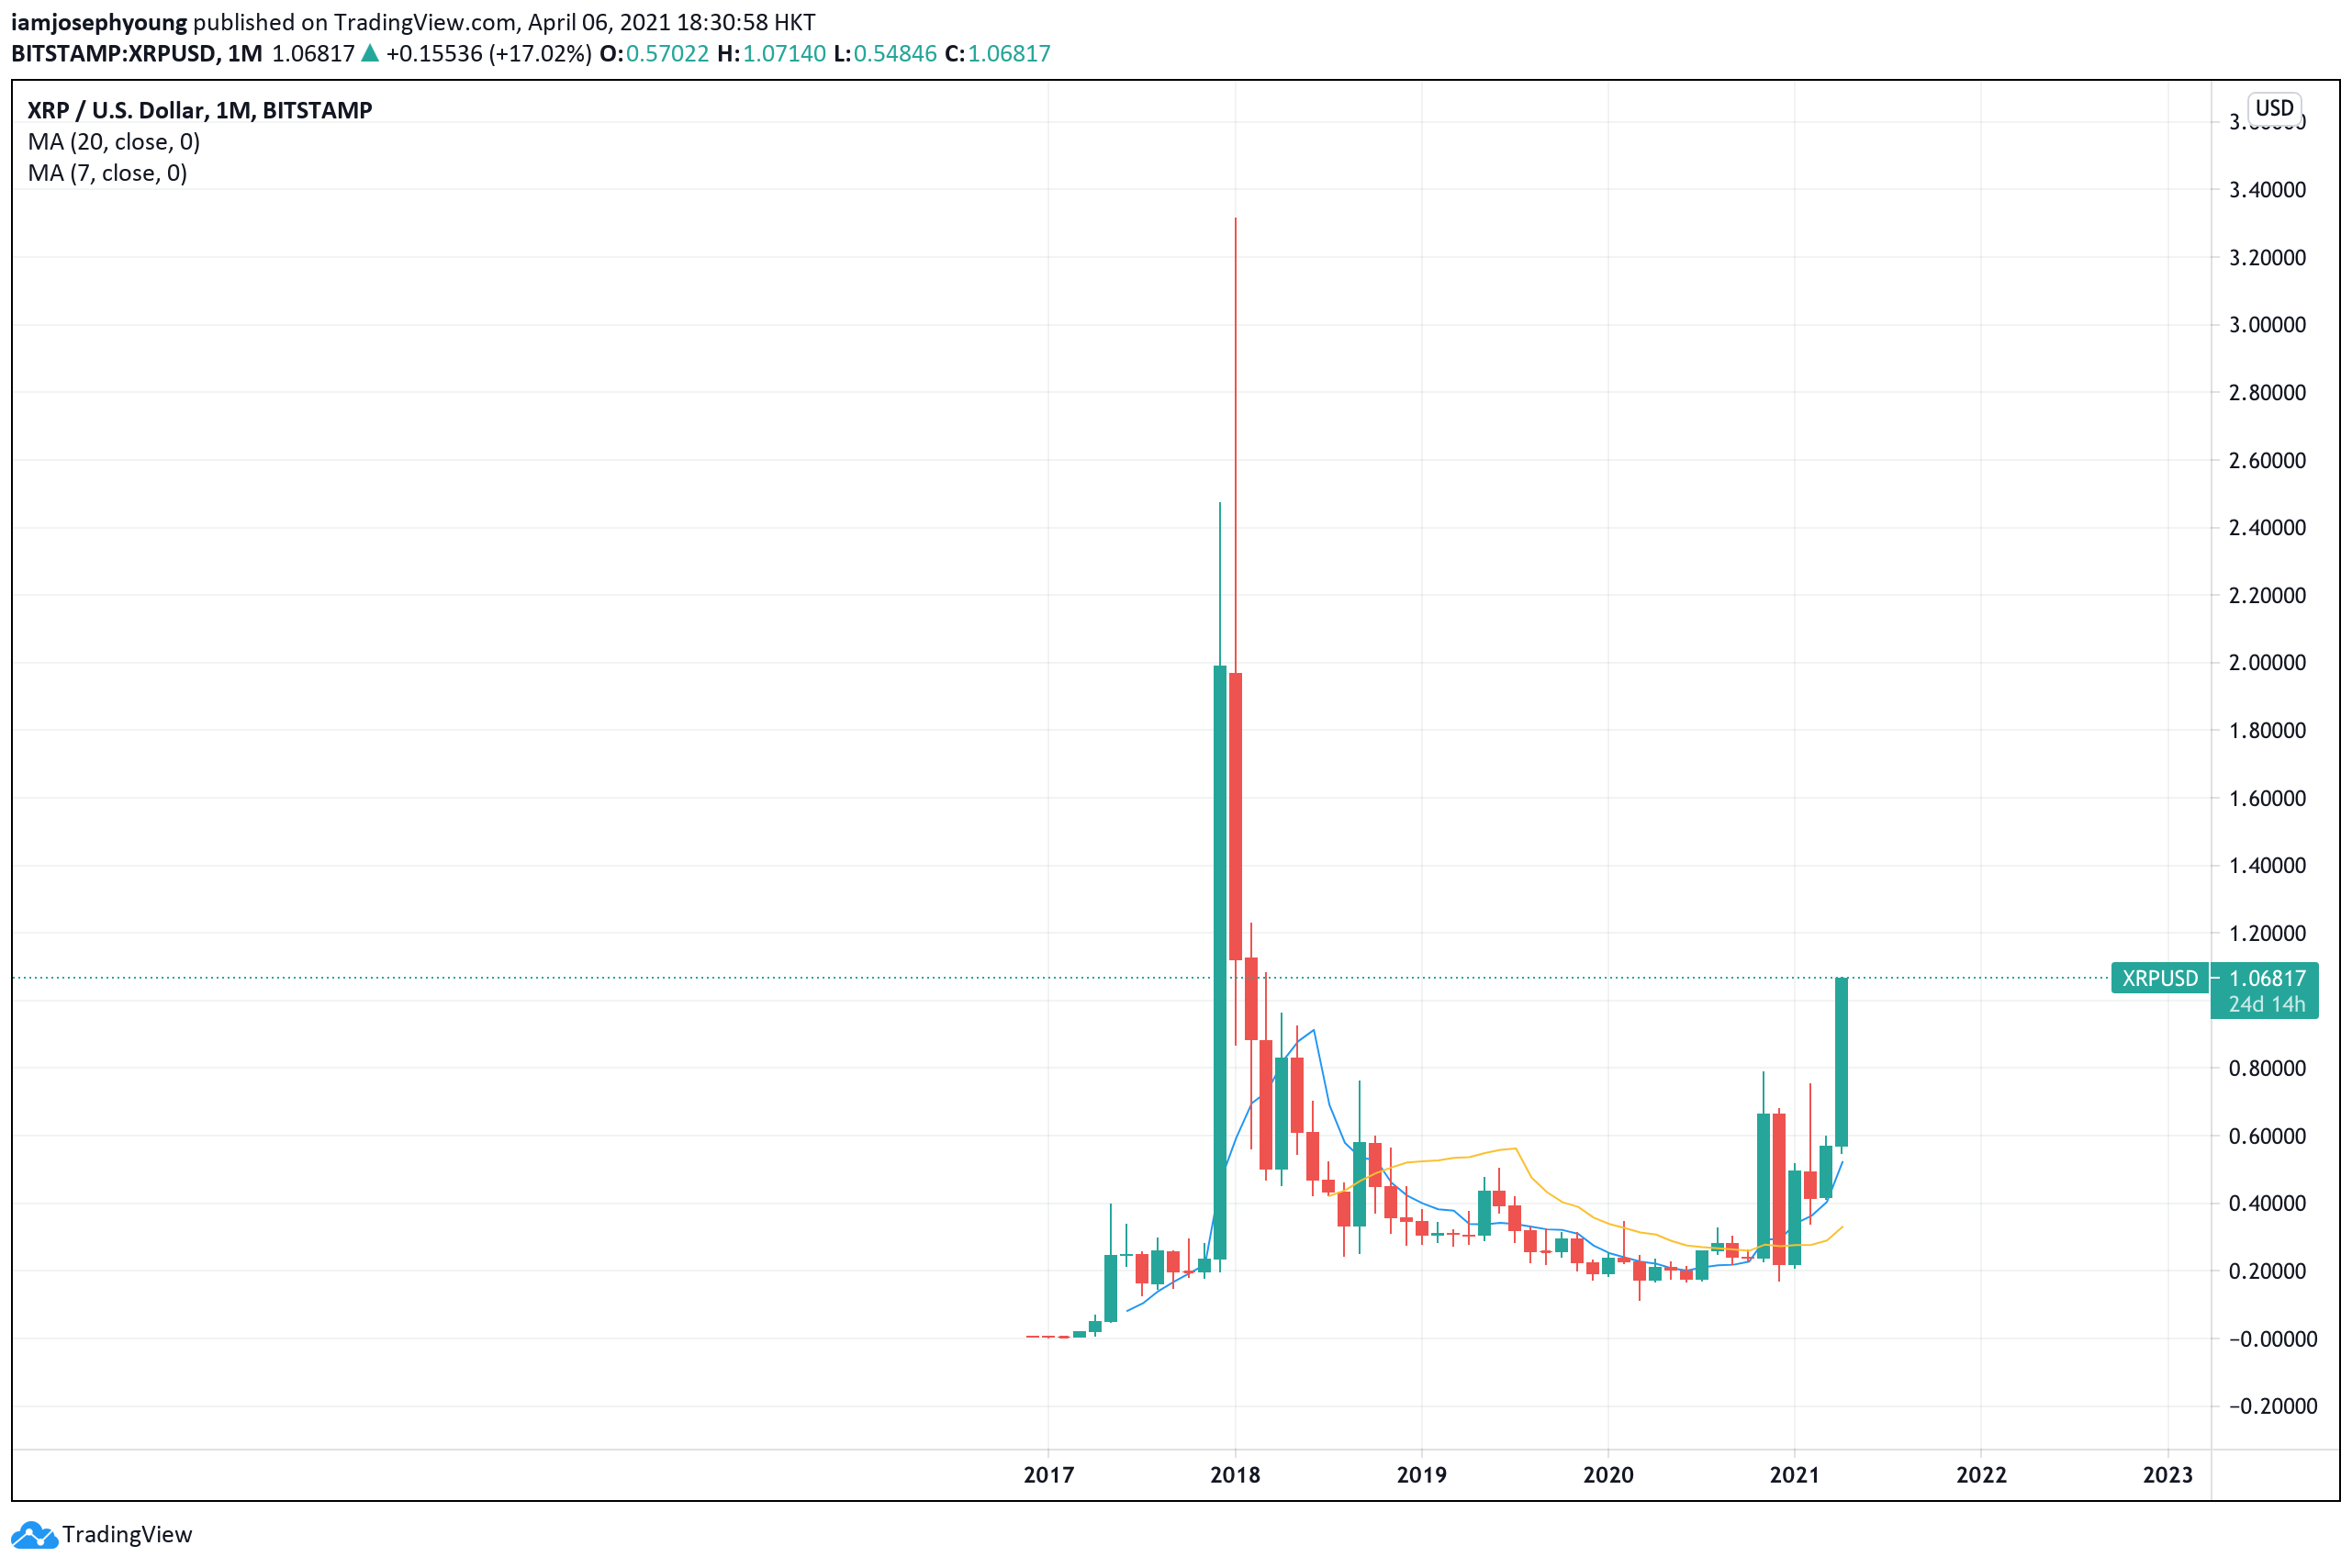 XRP surpasses $1 for the first time since 2018: What's behind the new rally?